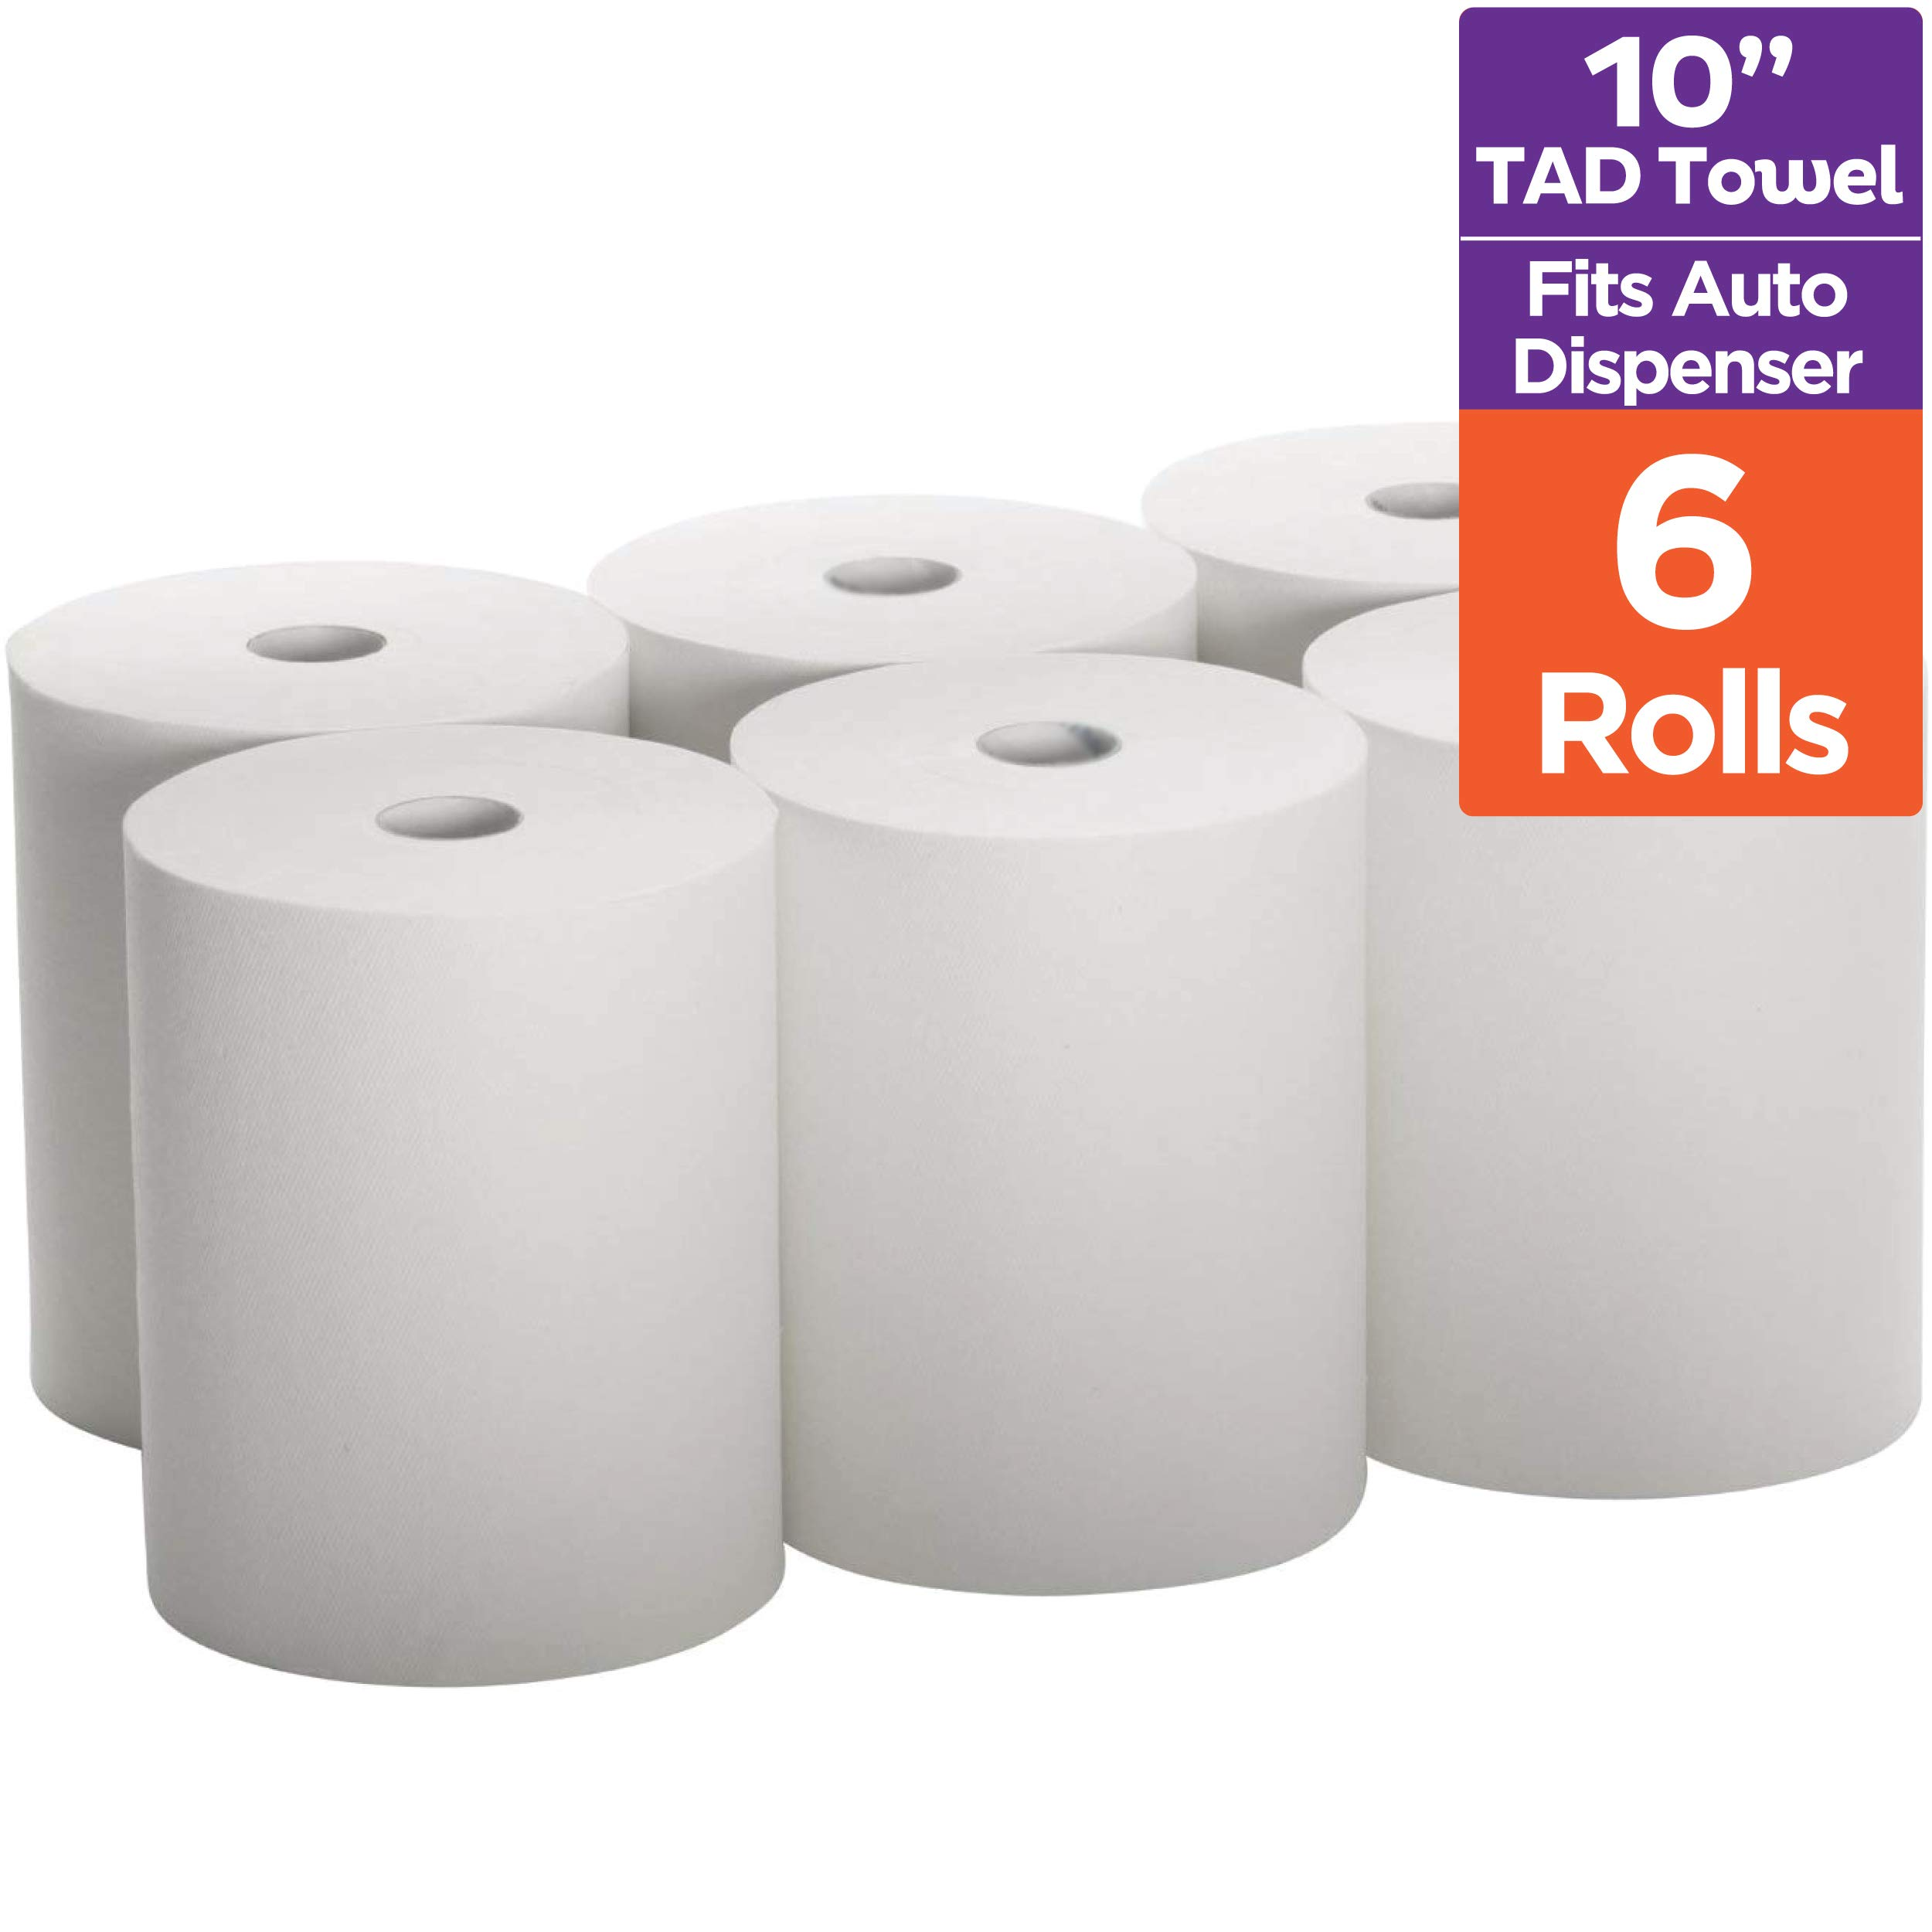 Industrial Paper Towels 10 x 800 White Roll Towels High Capacity Premium Quality (TAD Fabric Cloth Like Texture) Fits Touchless EnMotion Automatic Commercial Towel Dispenser (Packed 6 Rolls) by Stack Man